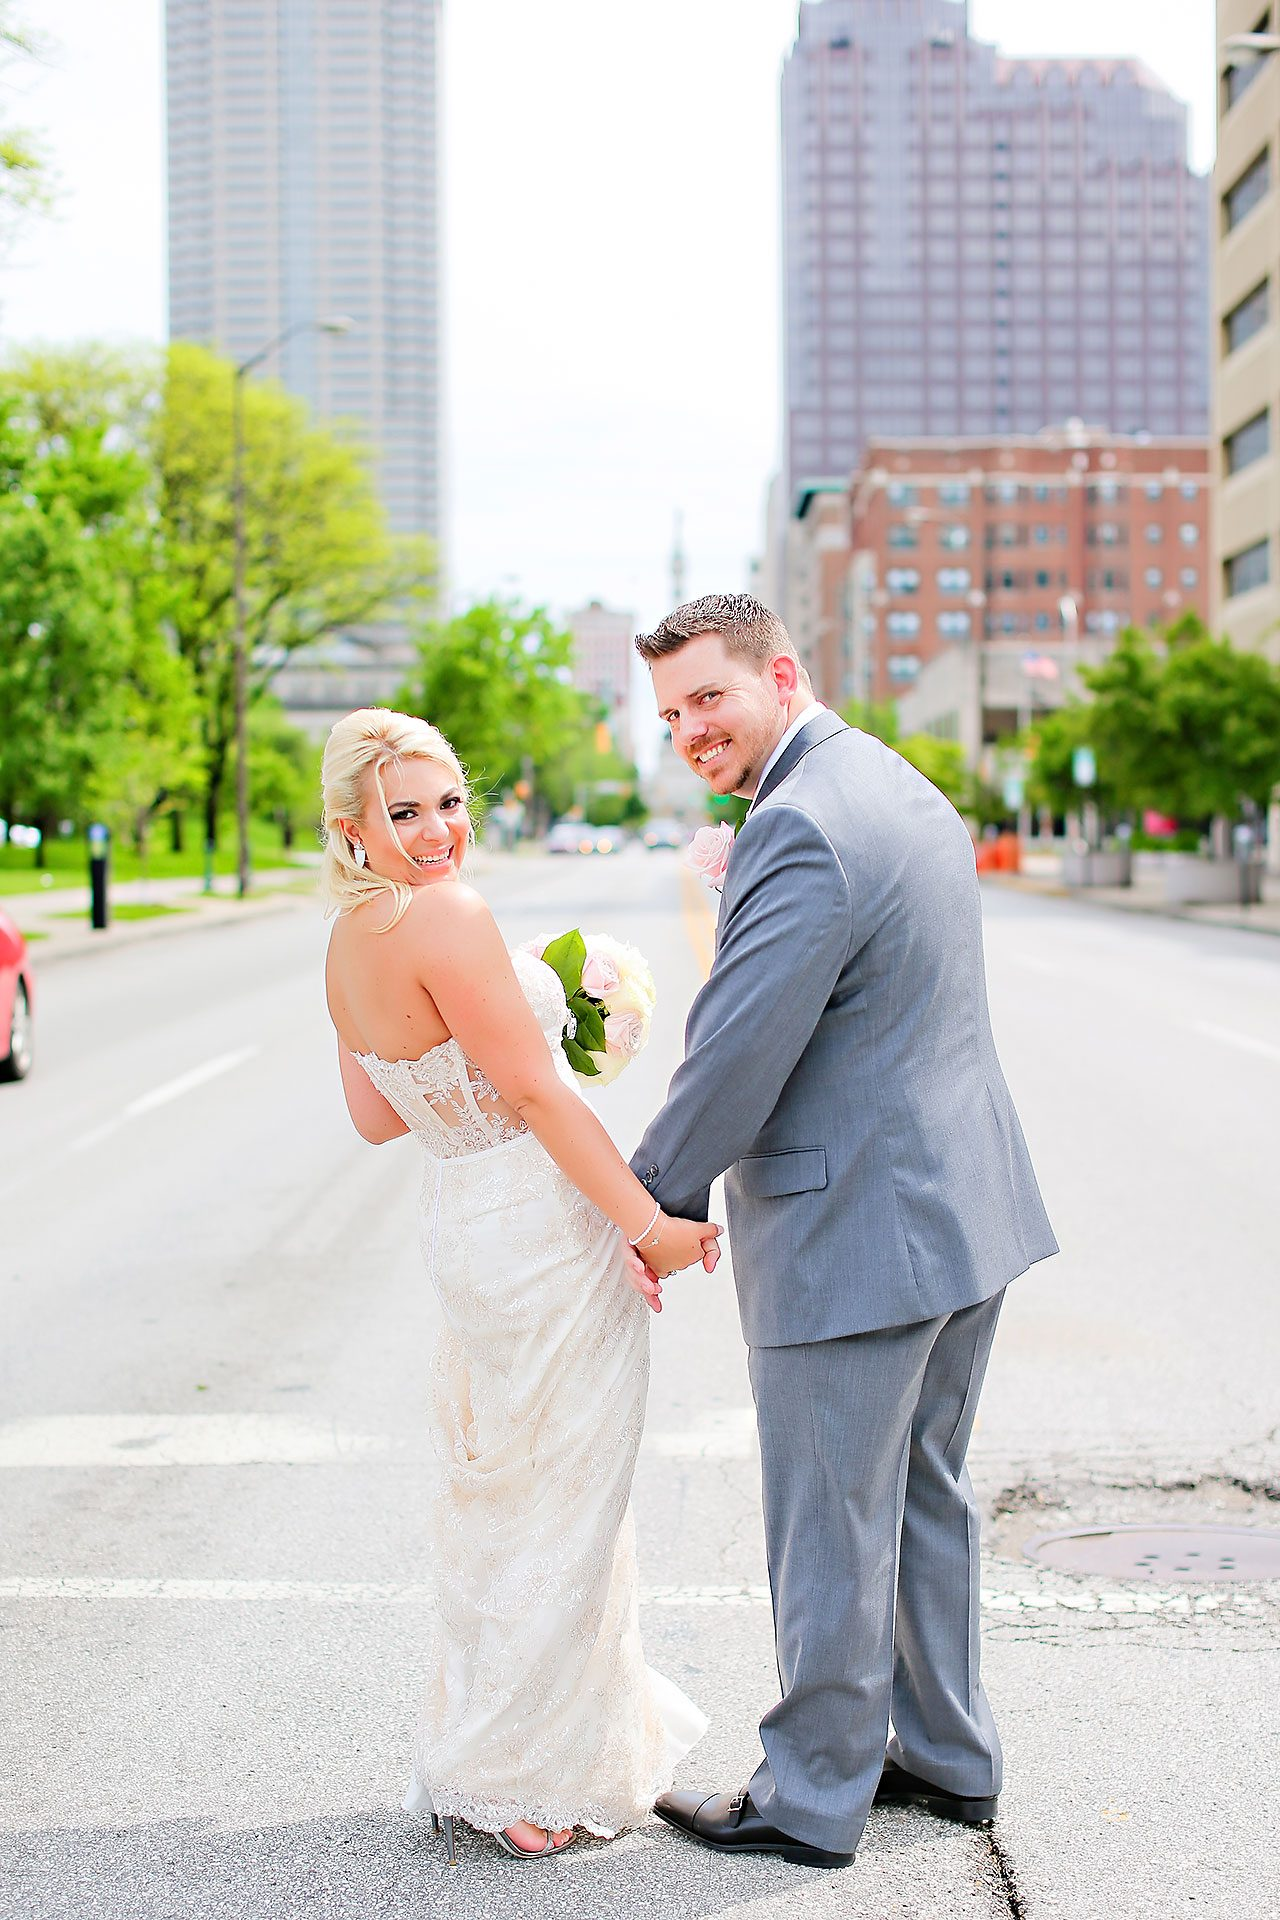 Lauren Bryan Scottish Rite Indianapolis Wedding 167